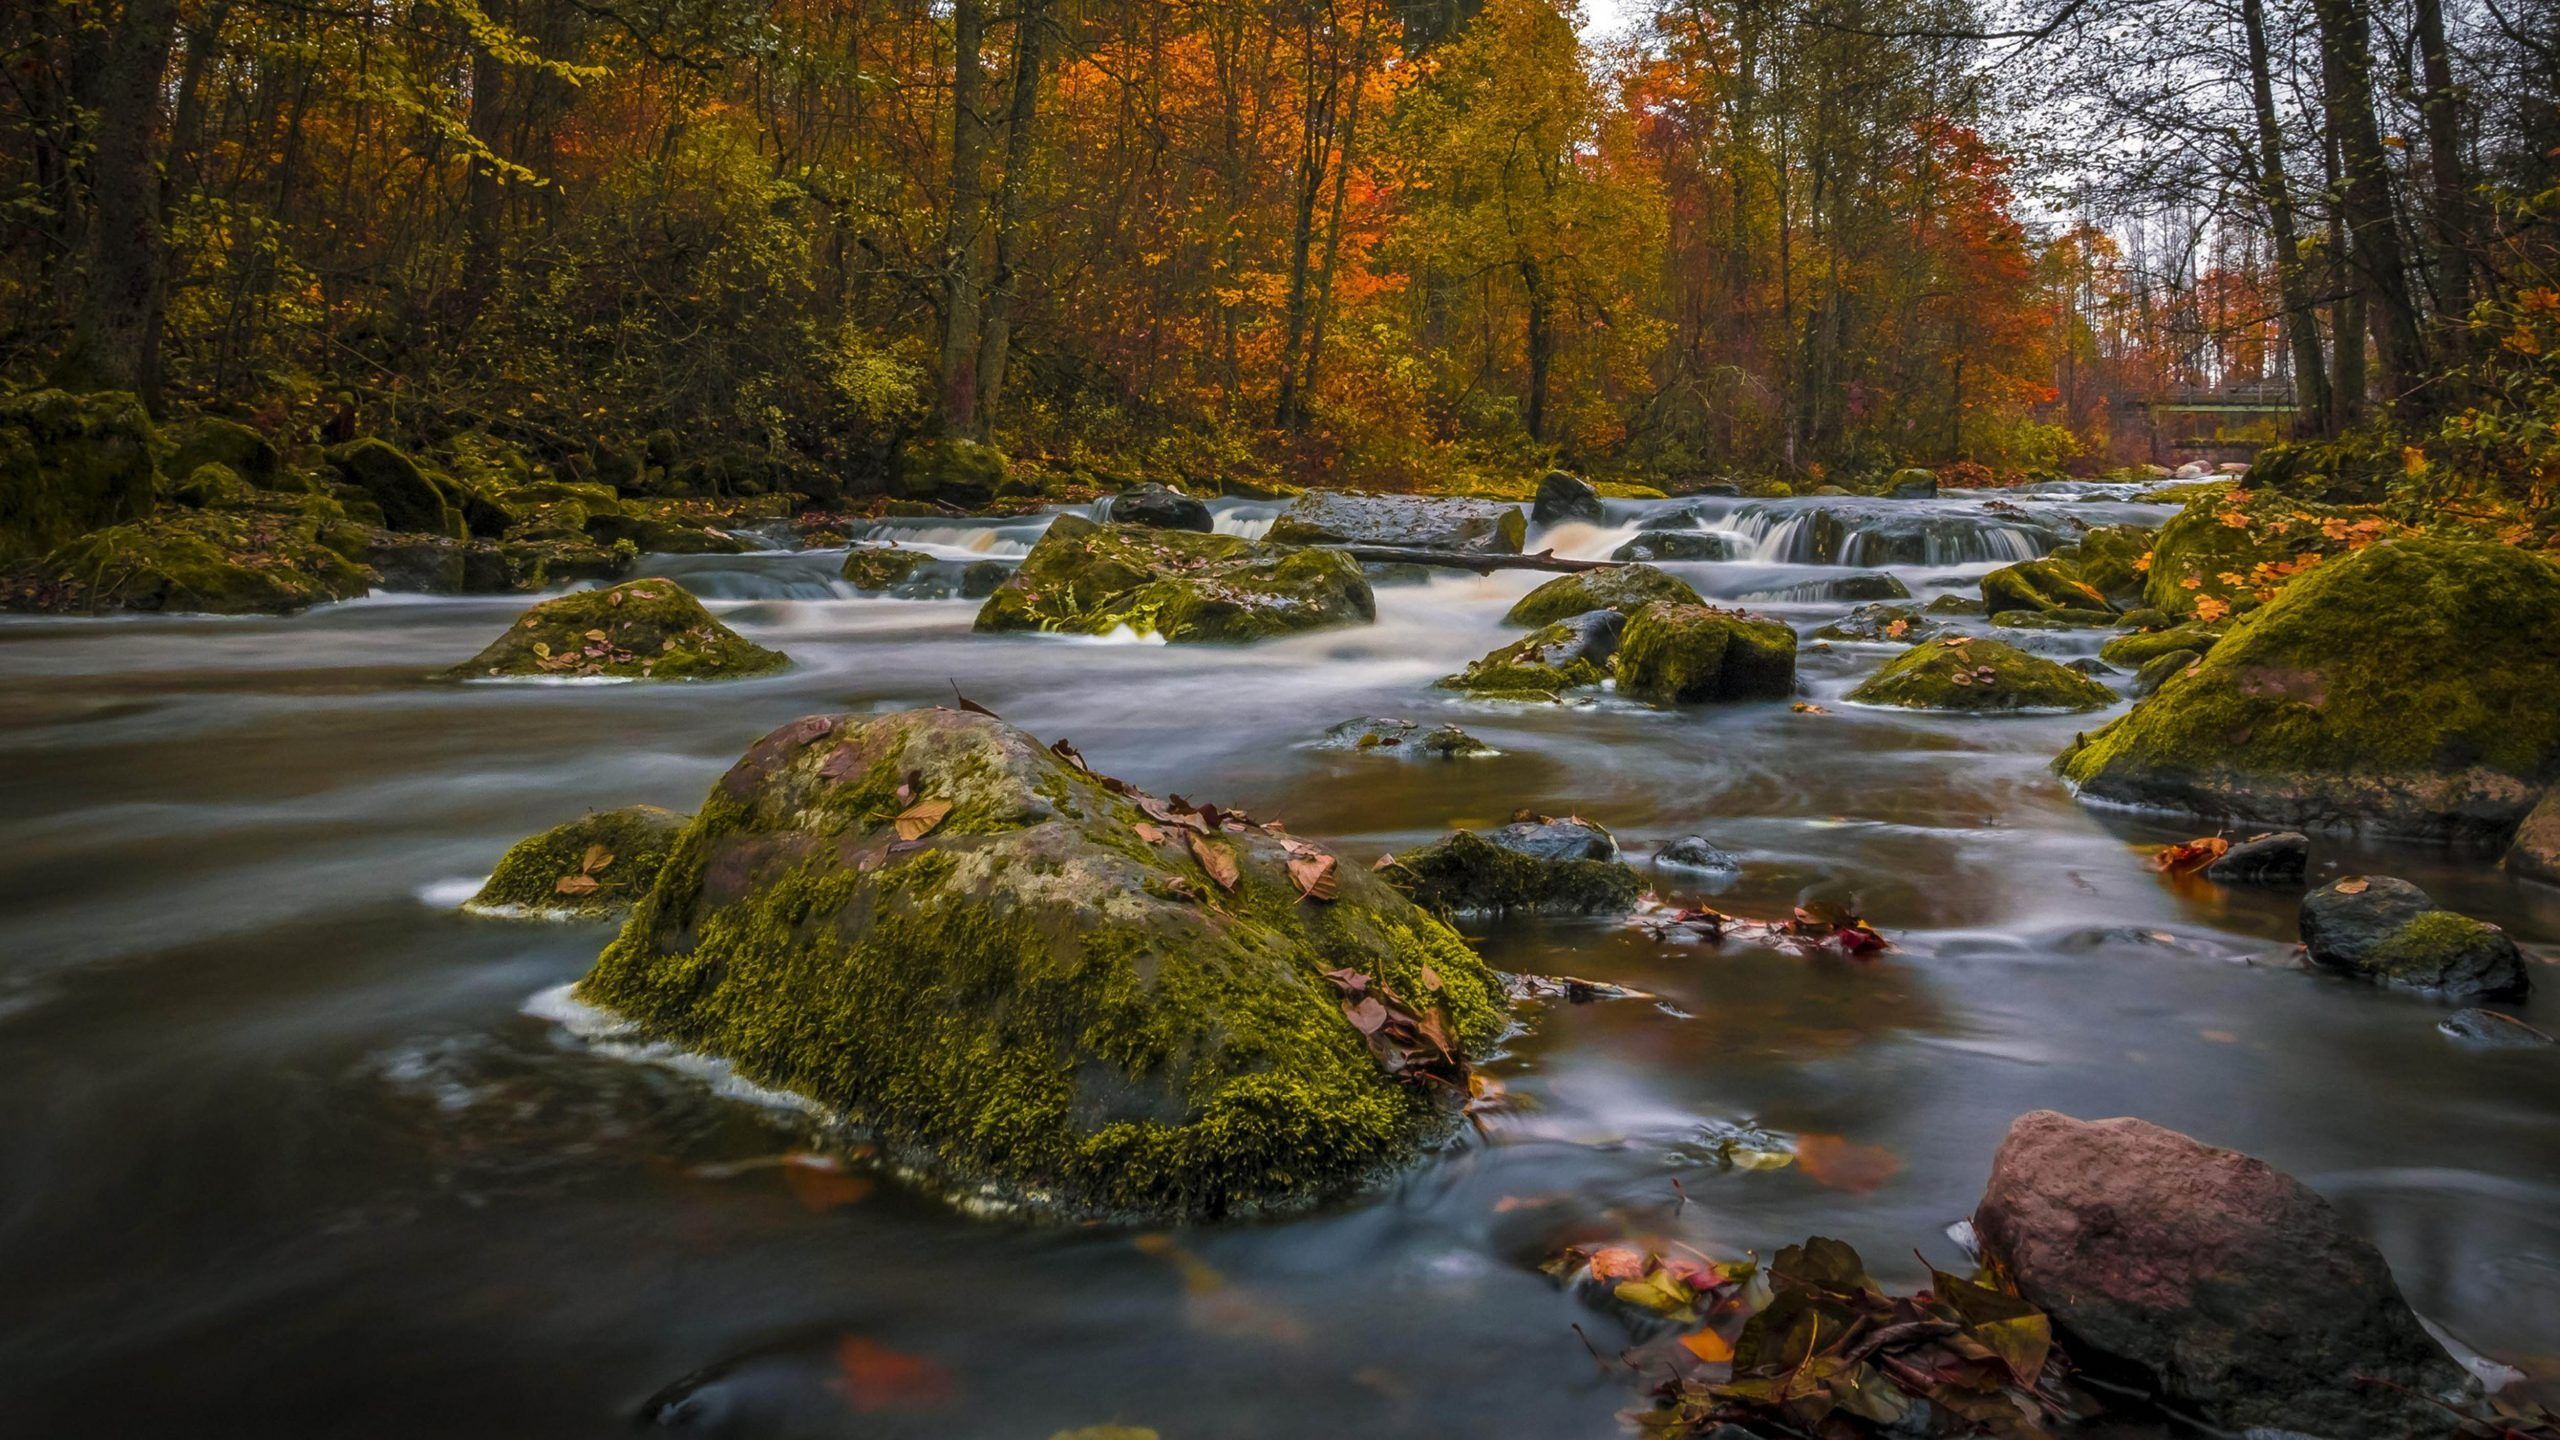 nature landscape autumn colors forests trees river rocks green moss ultra hd 4k puter wallpapers 5000x2813